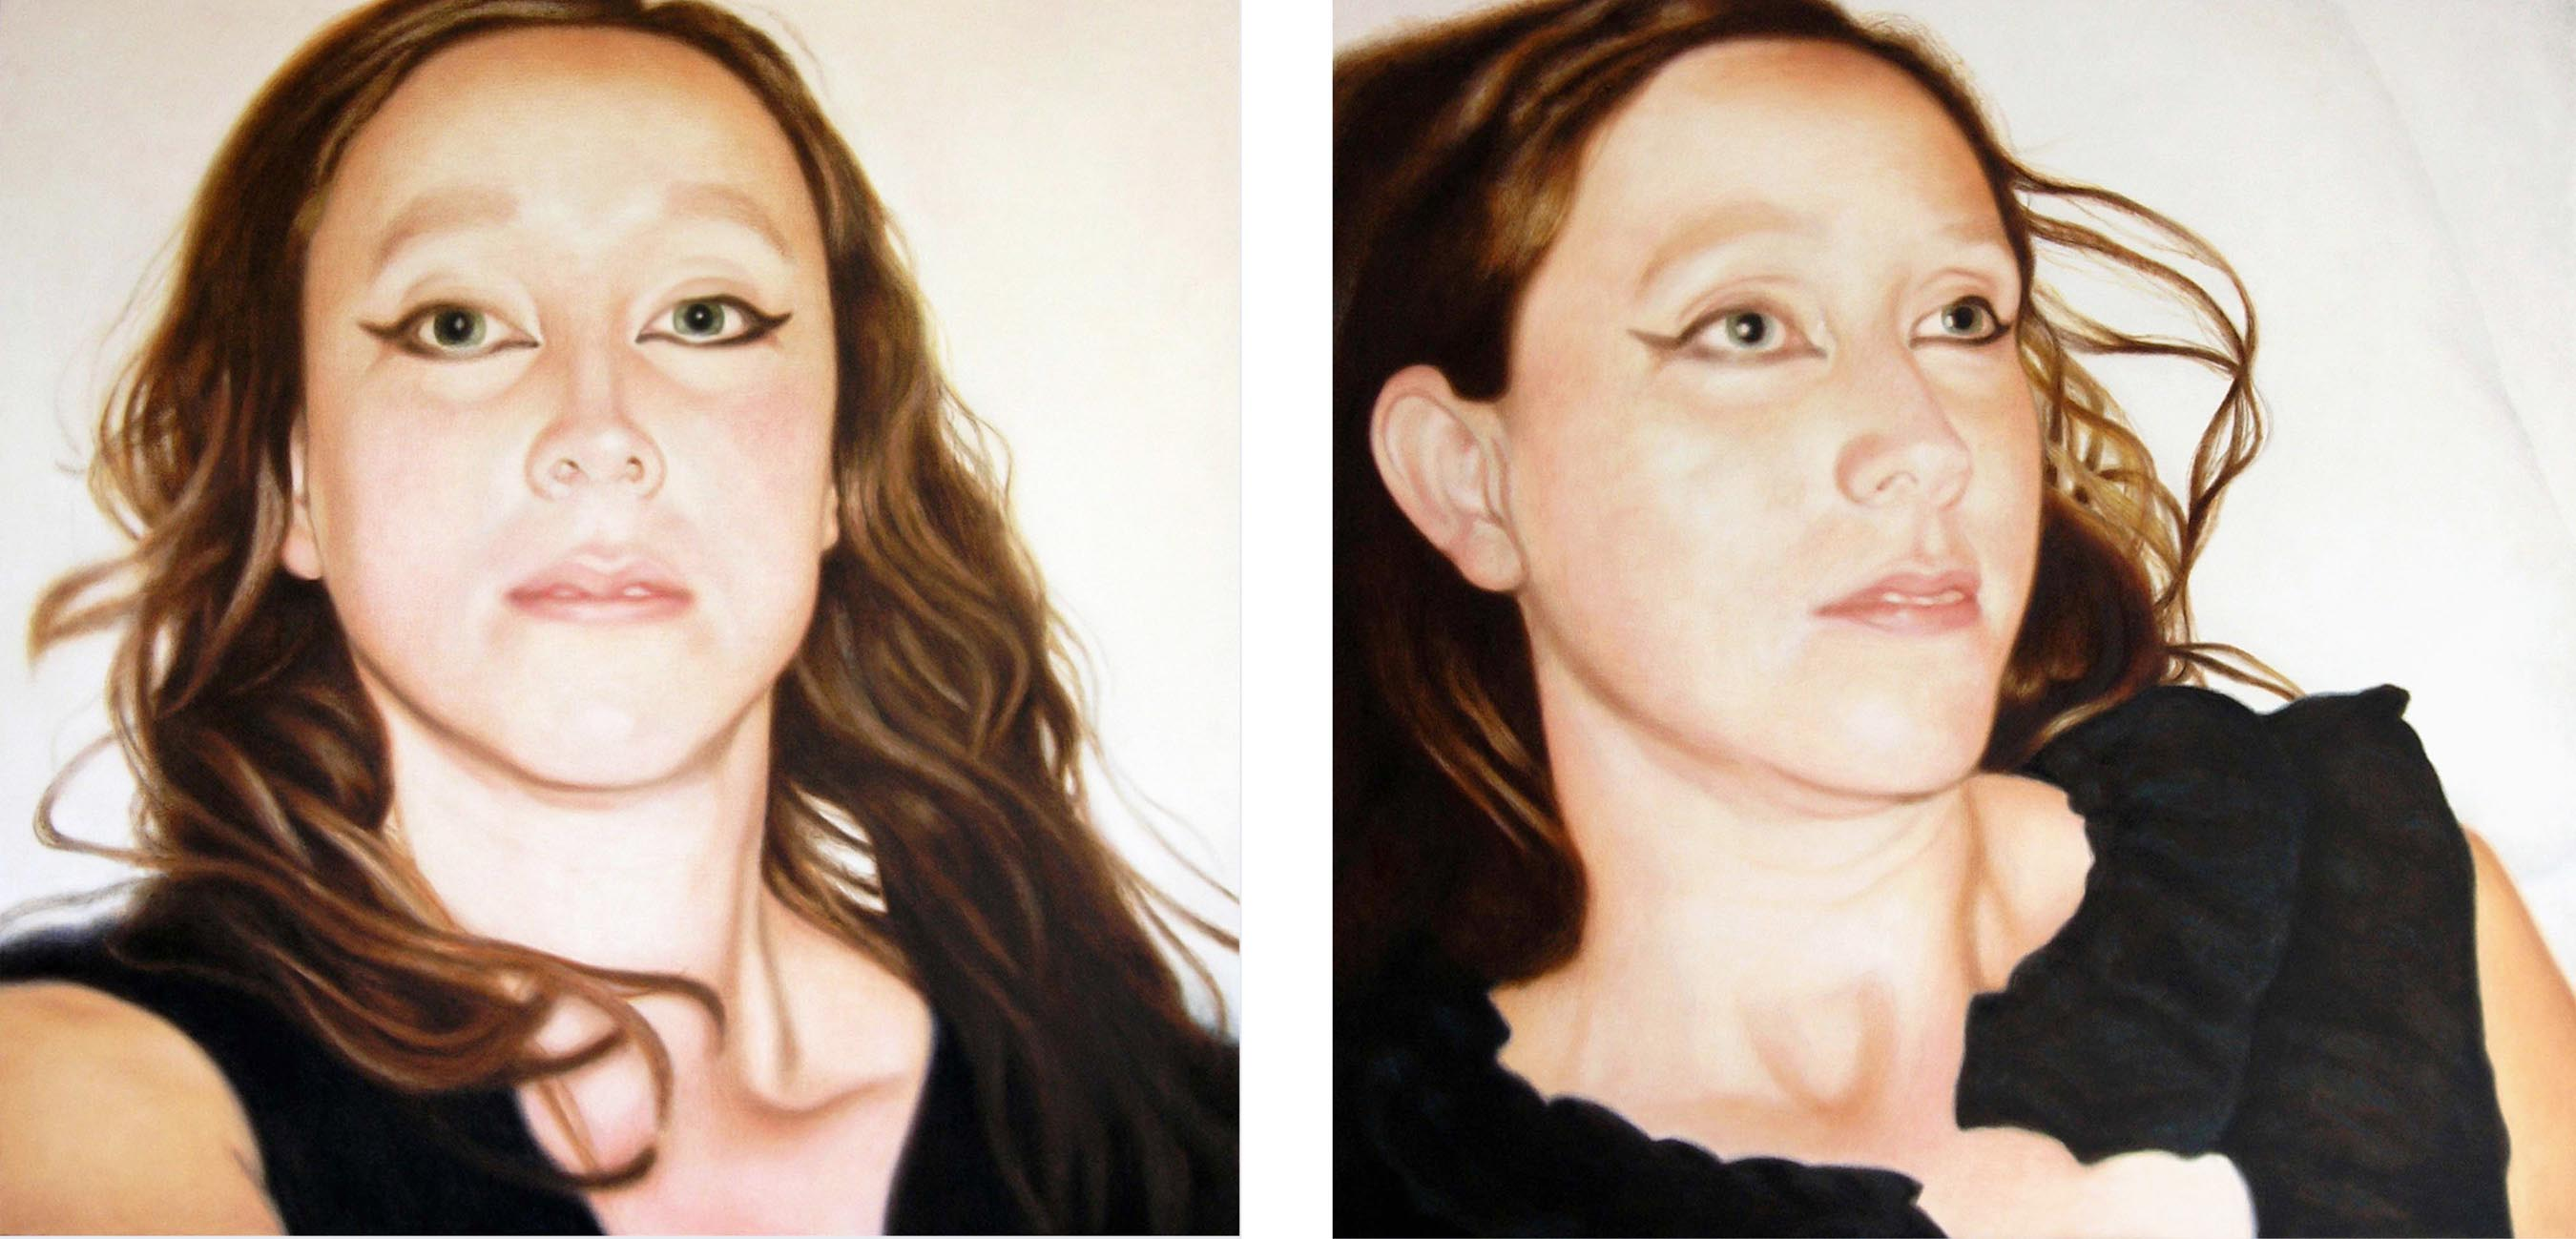 Lique Schoot, Self-portraits 07 08 15 and 07 08 12